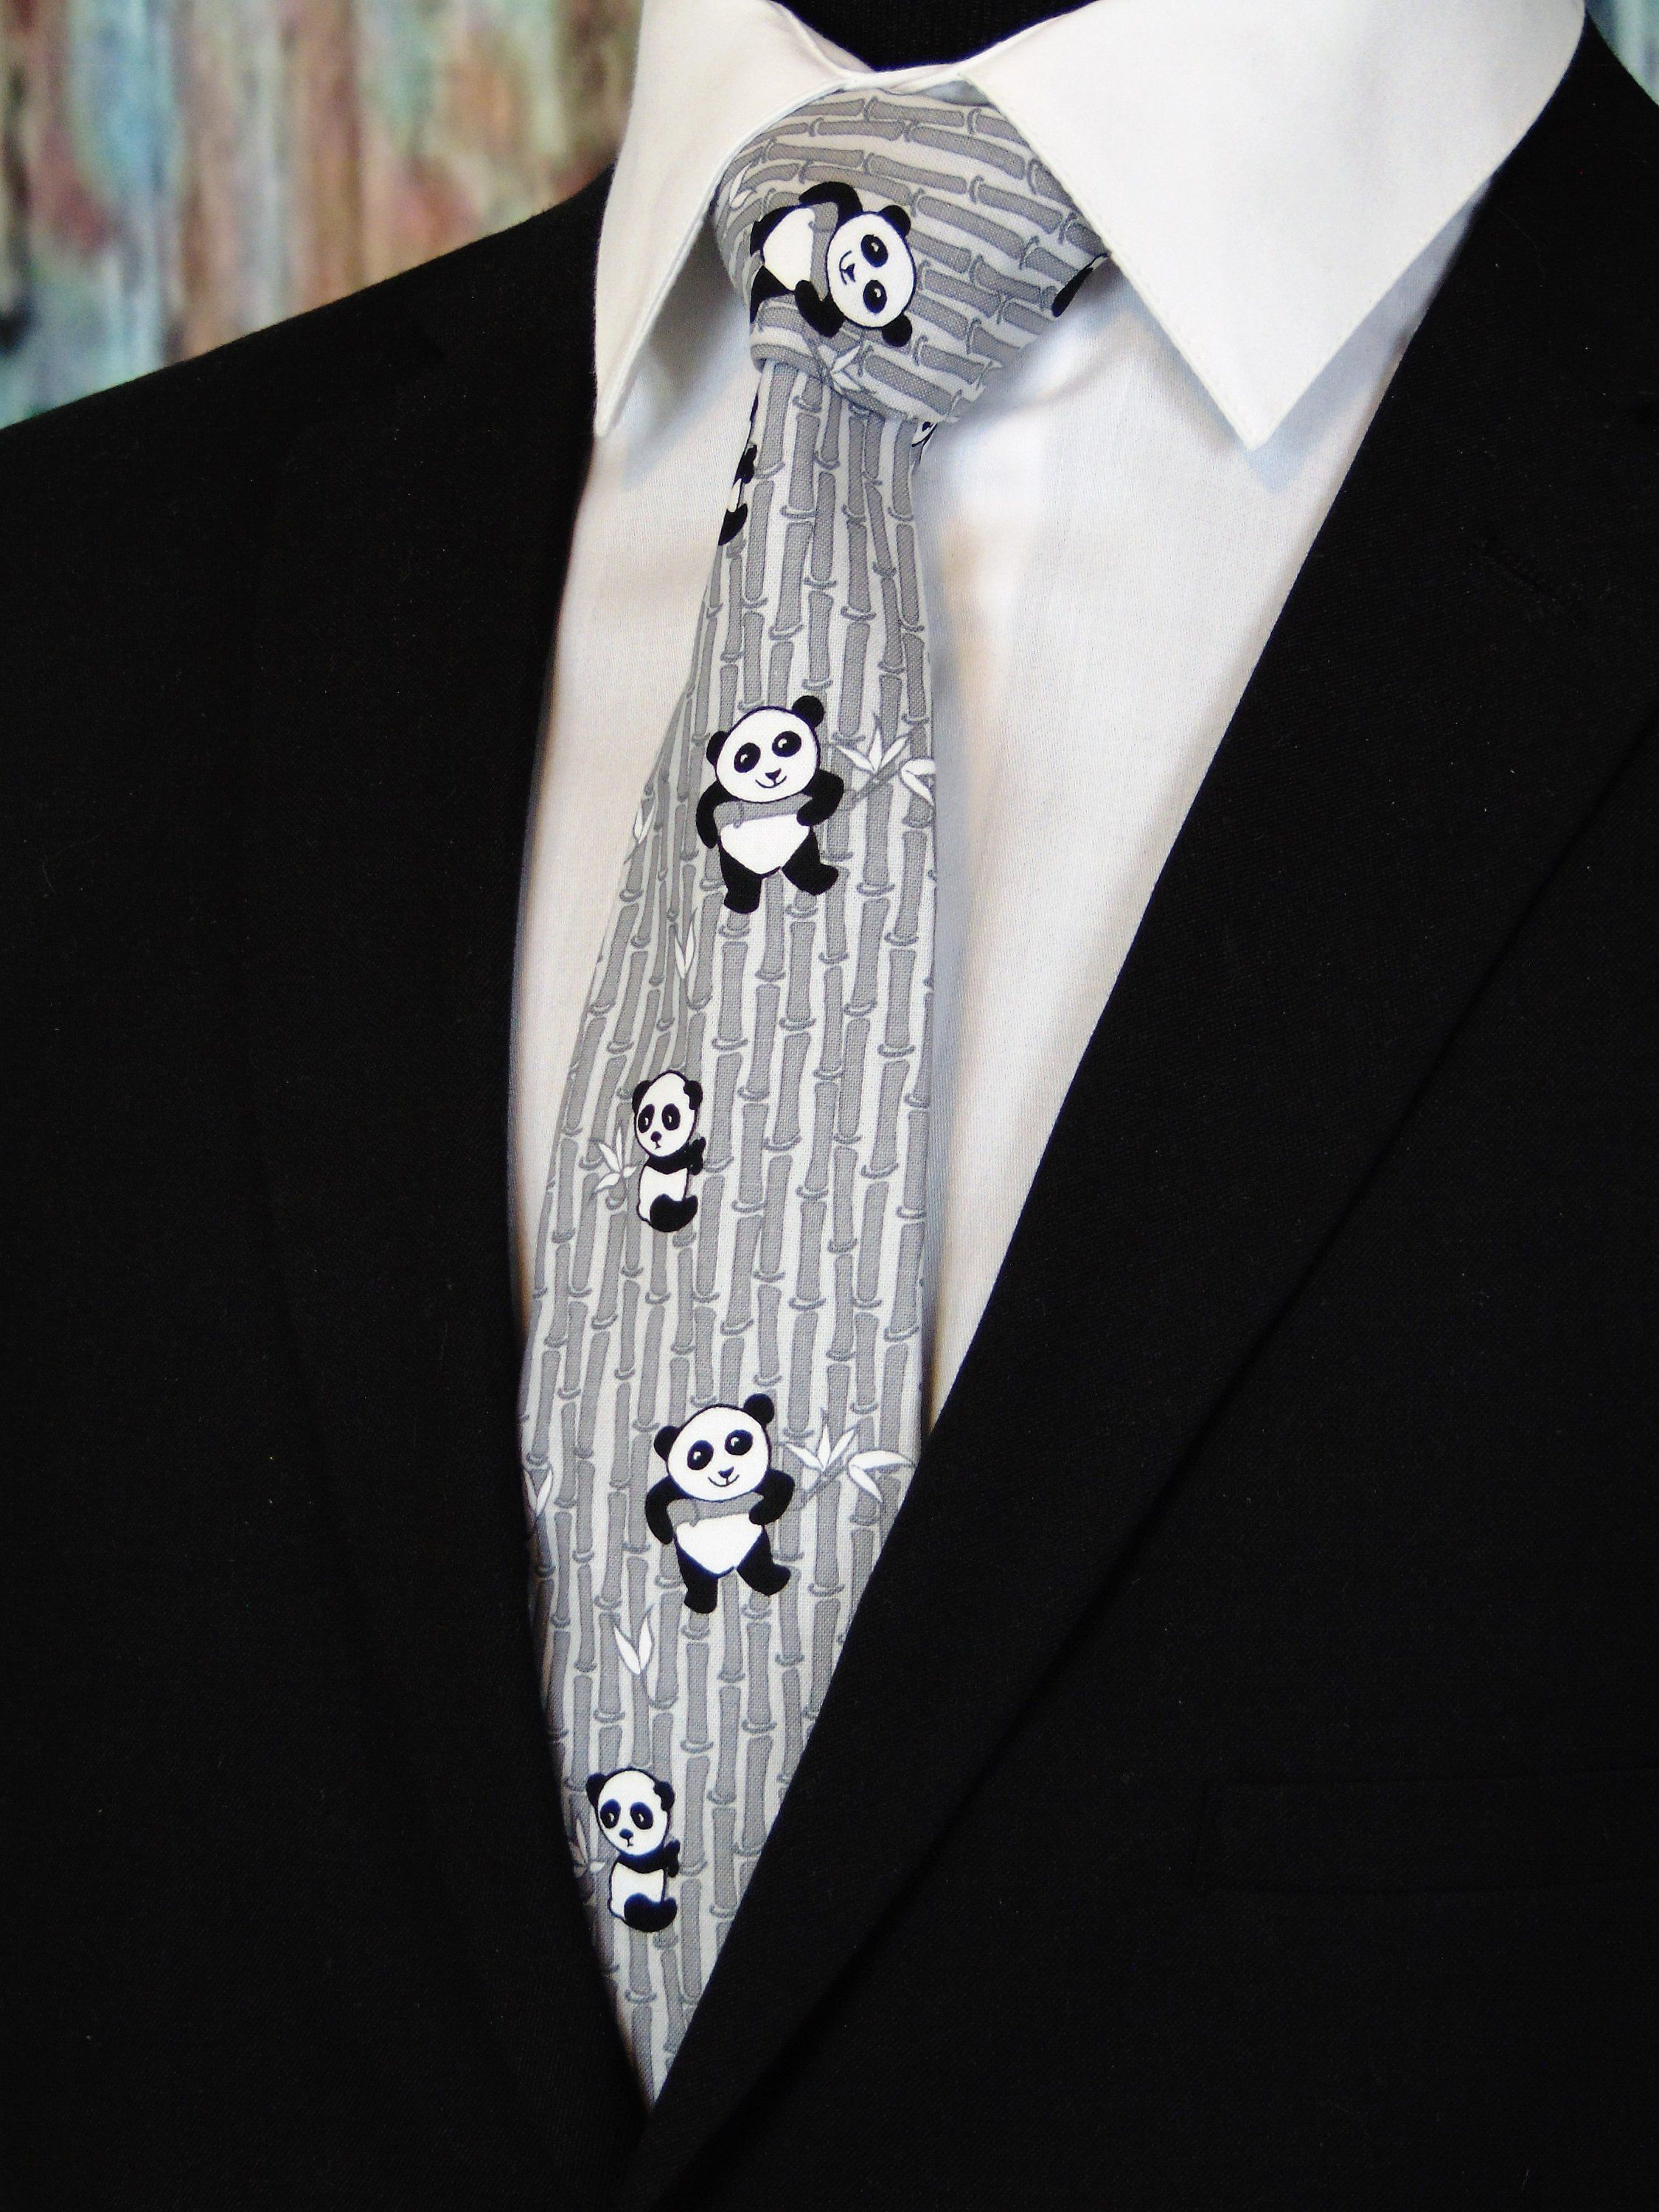 251016f800230 Panda Gifts – Panda Necktie with Black and White Small and Large Pandas. by  EdsNeckties on Etsy